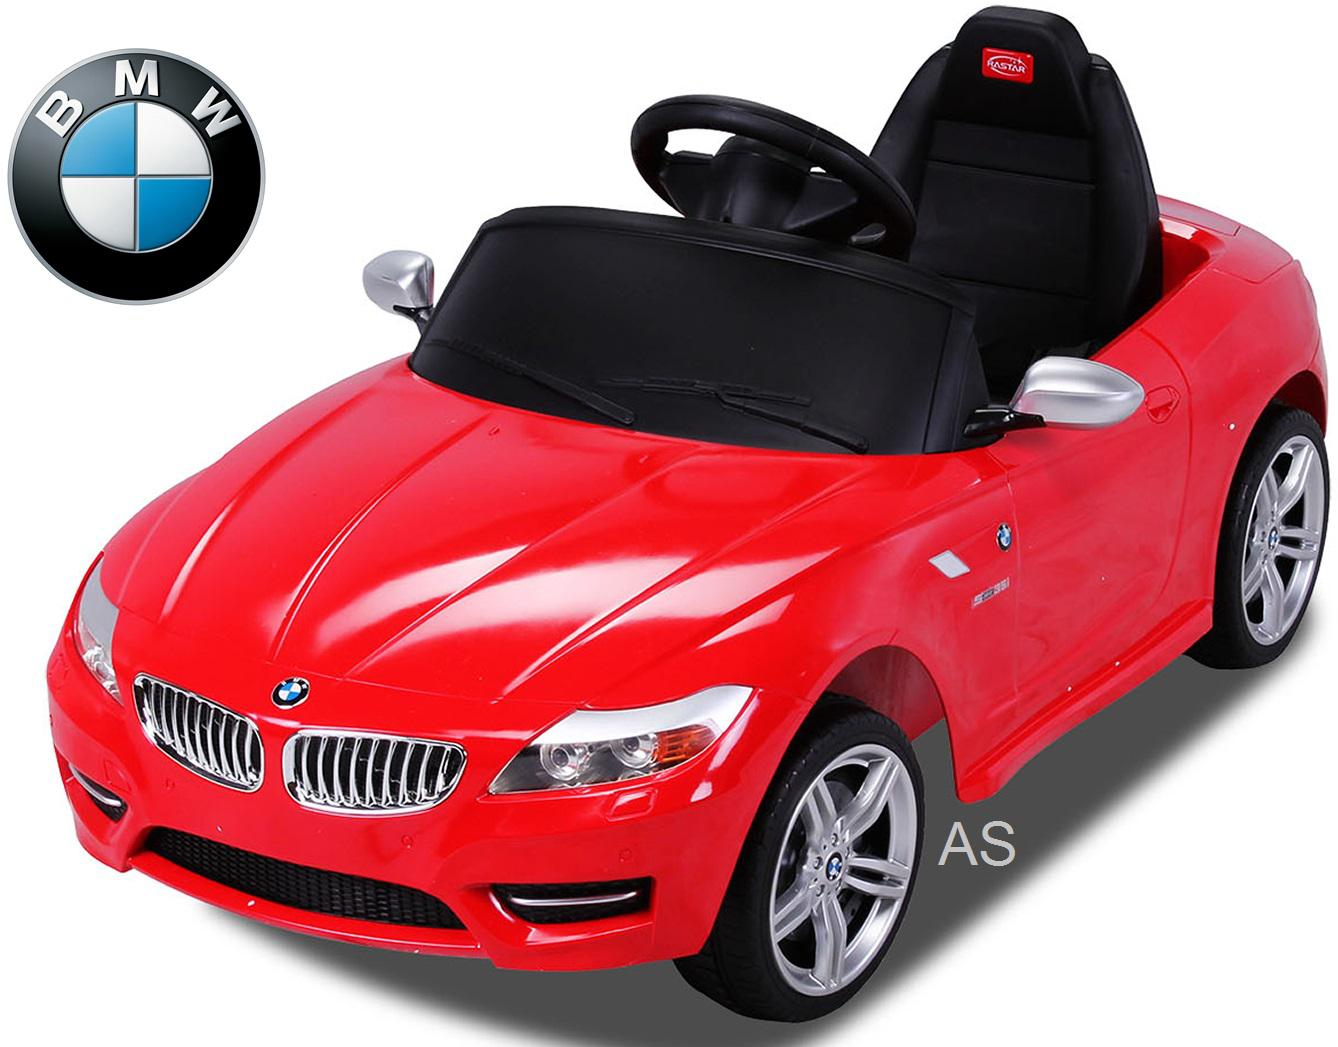 allstars kinderauto elektroauto bmw z4 rot lizenz. Black Bedroom Furniture Sets. Home Design Ideas